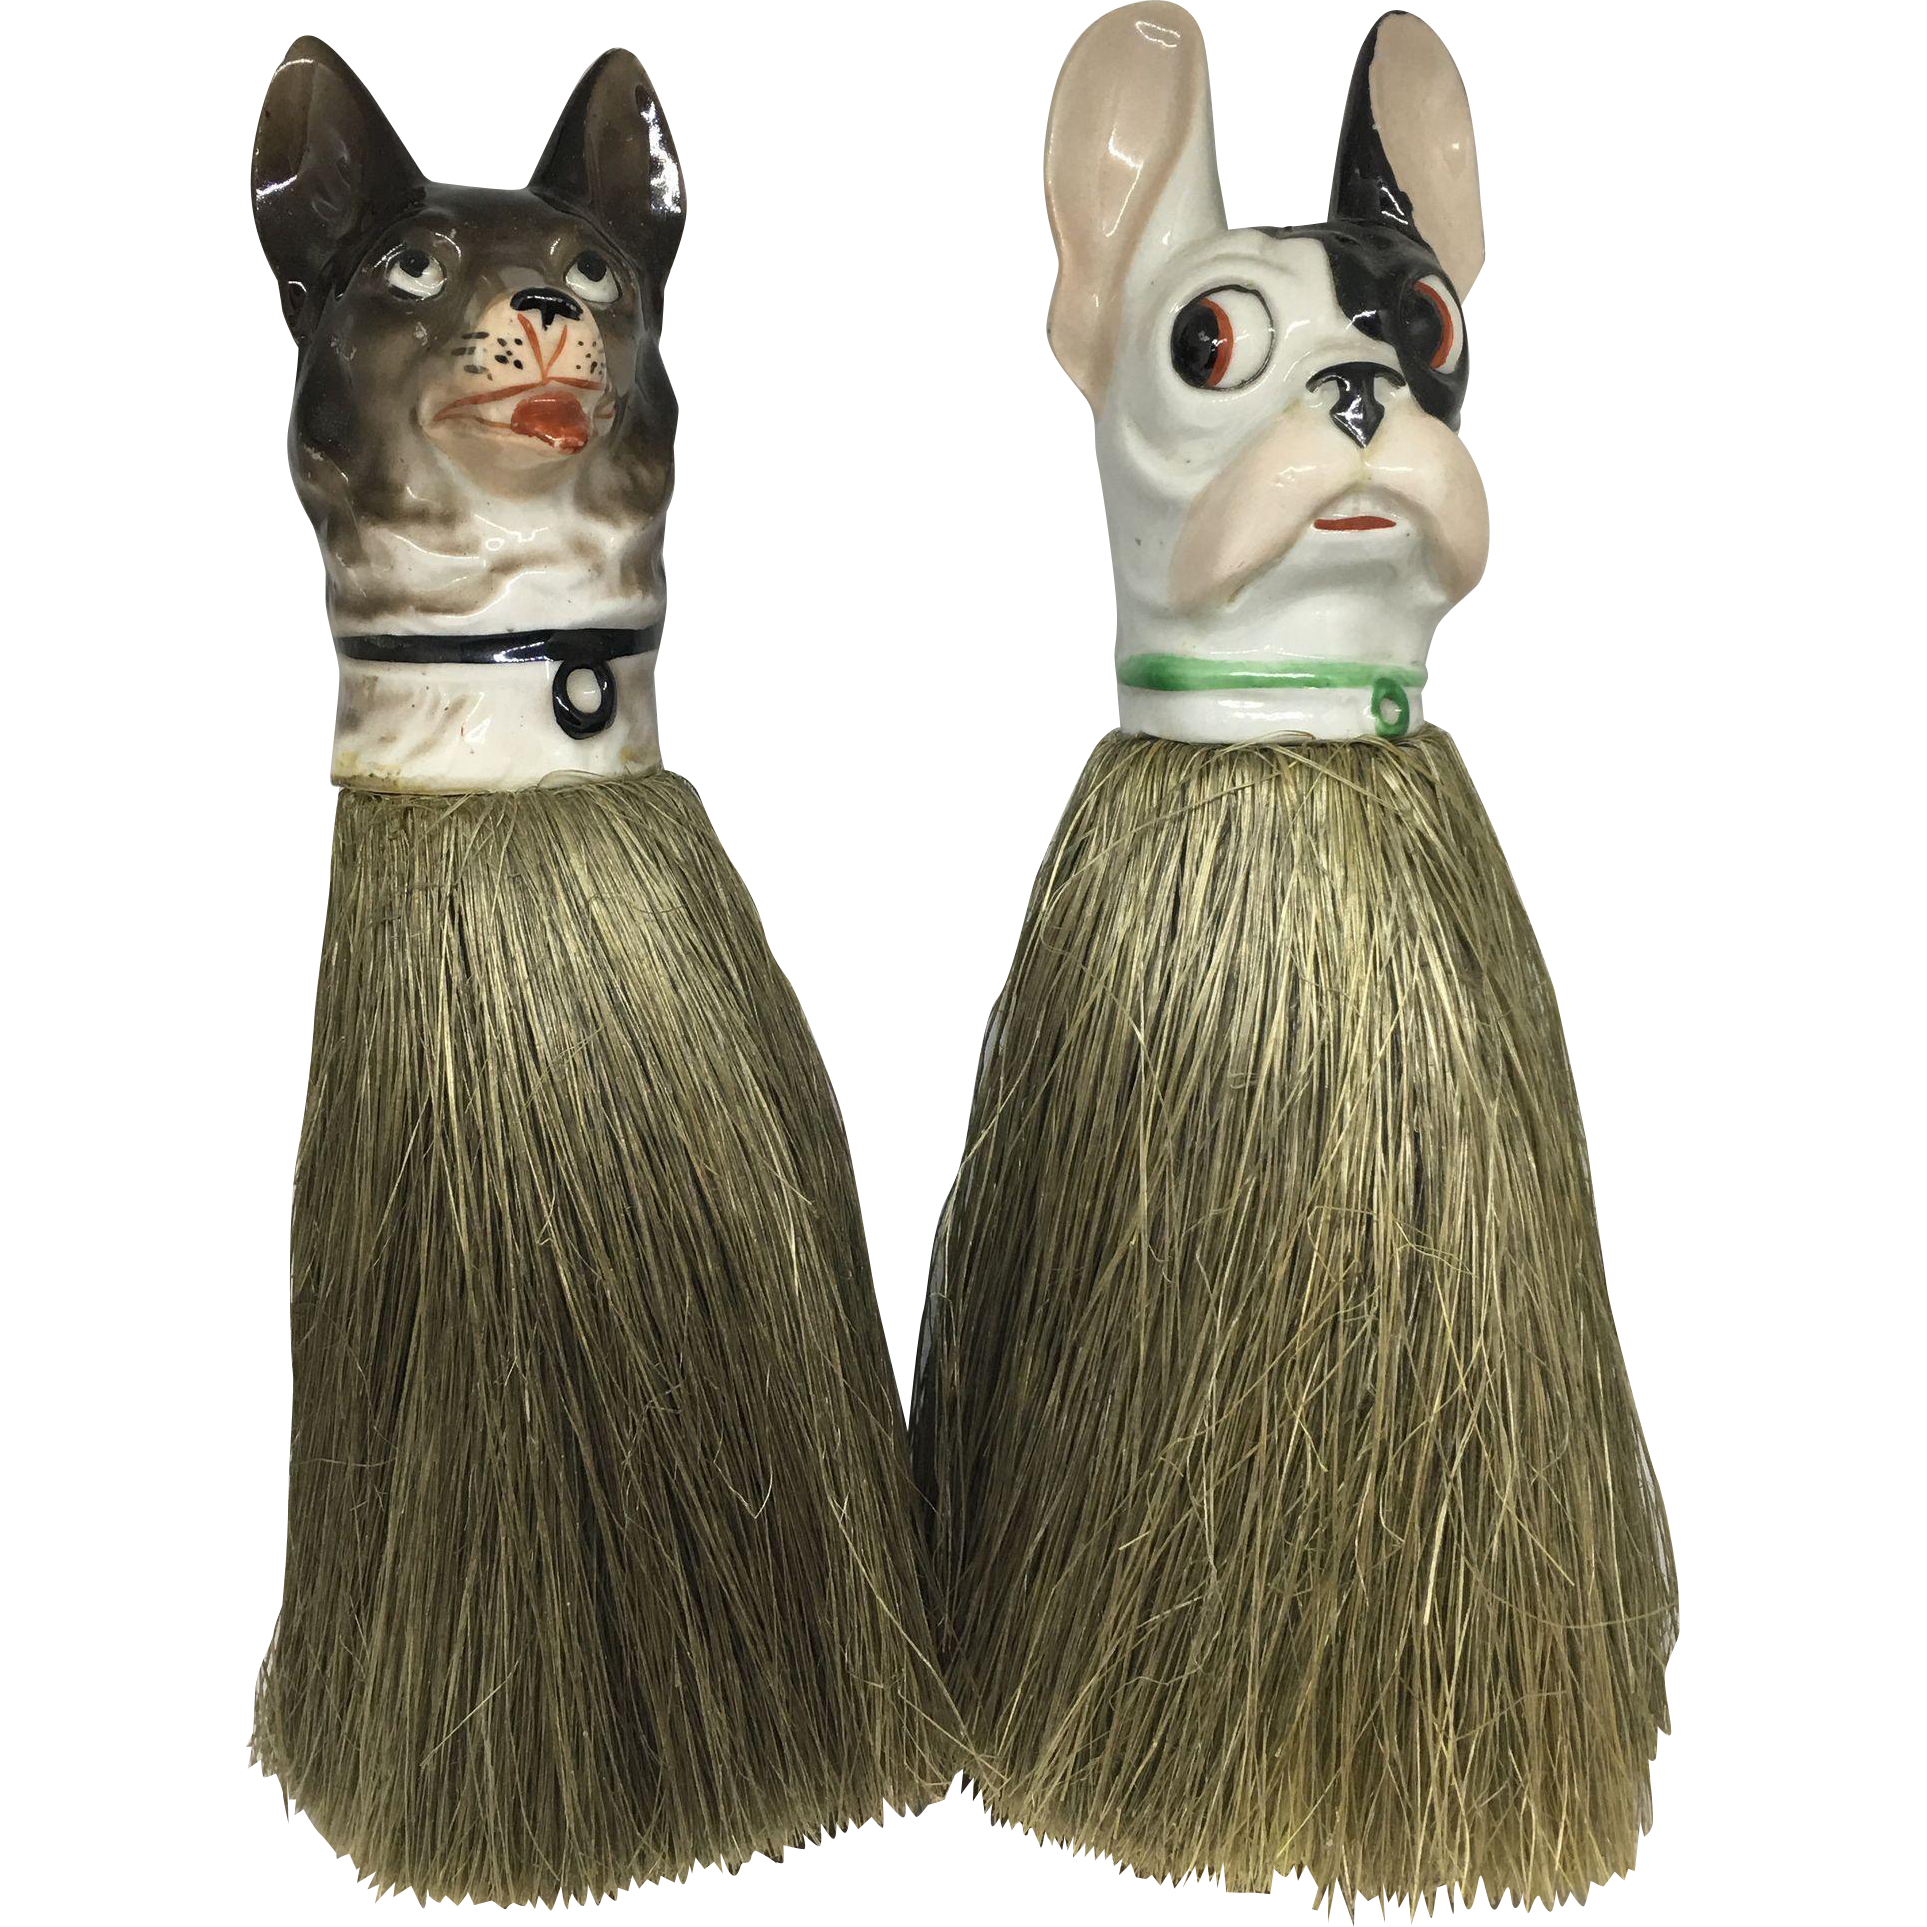 Pair of clothes brushes - German Shepherd and Boston Terrier / French Bulldog